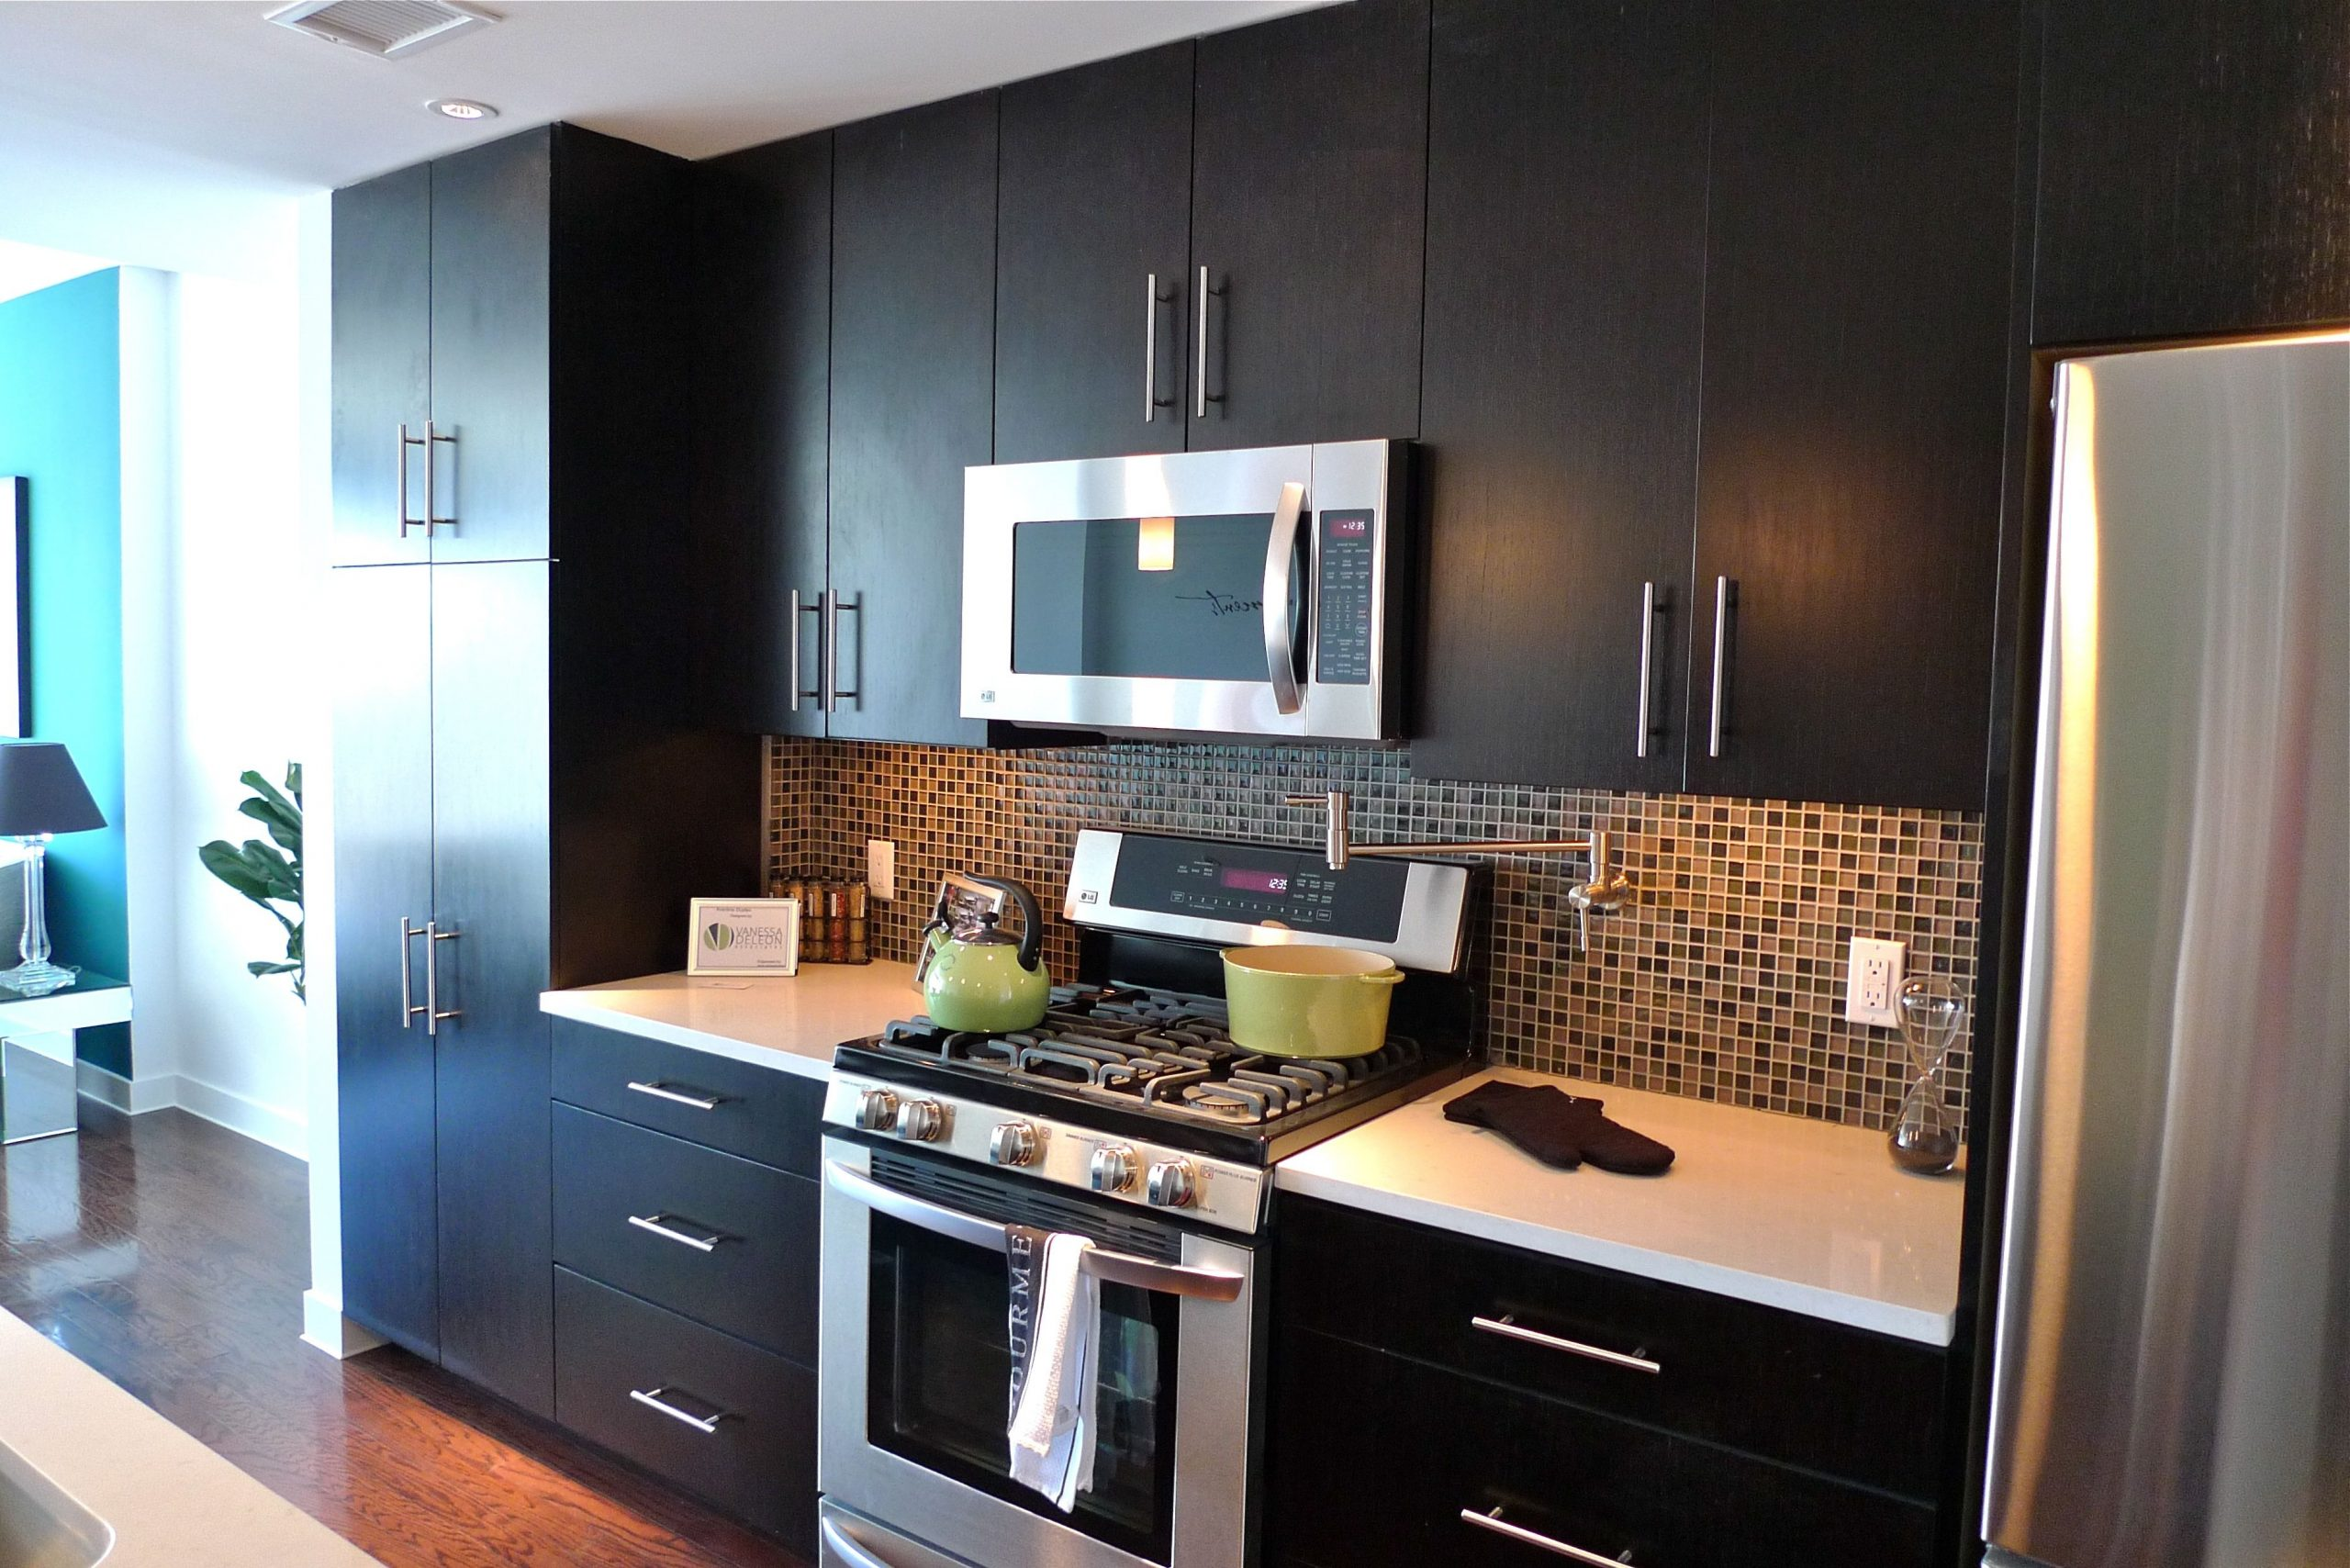 Aventine Condos Building Profile In Edgwater Nj Featuring with regard to Kitchen Design Jobs Near Me